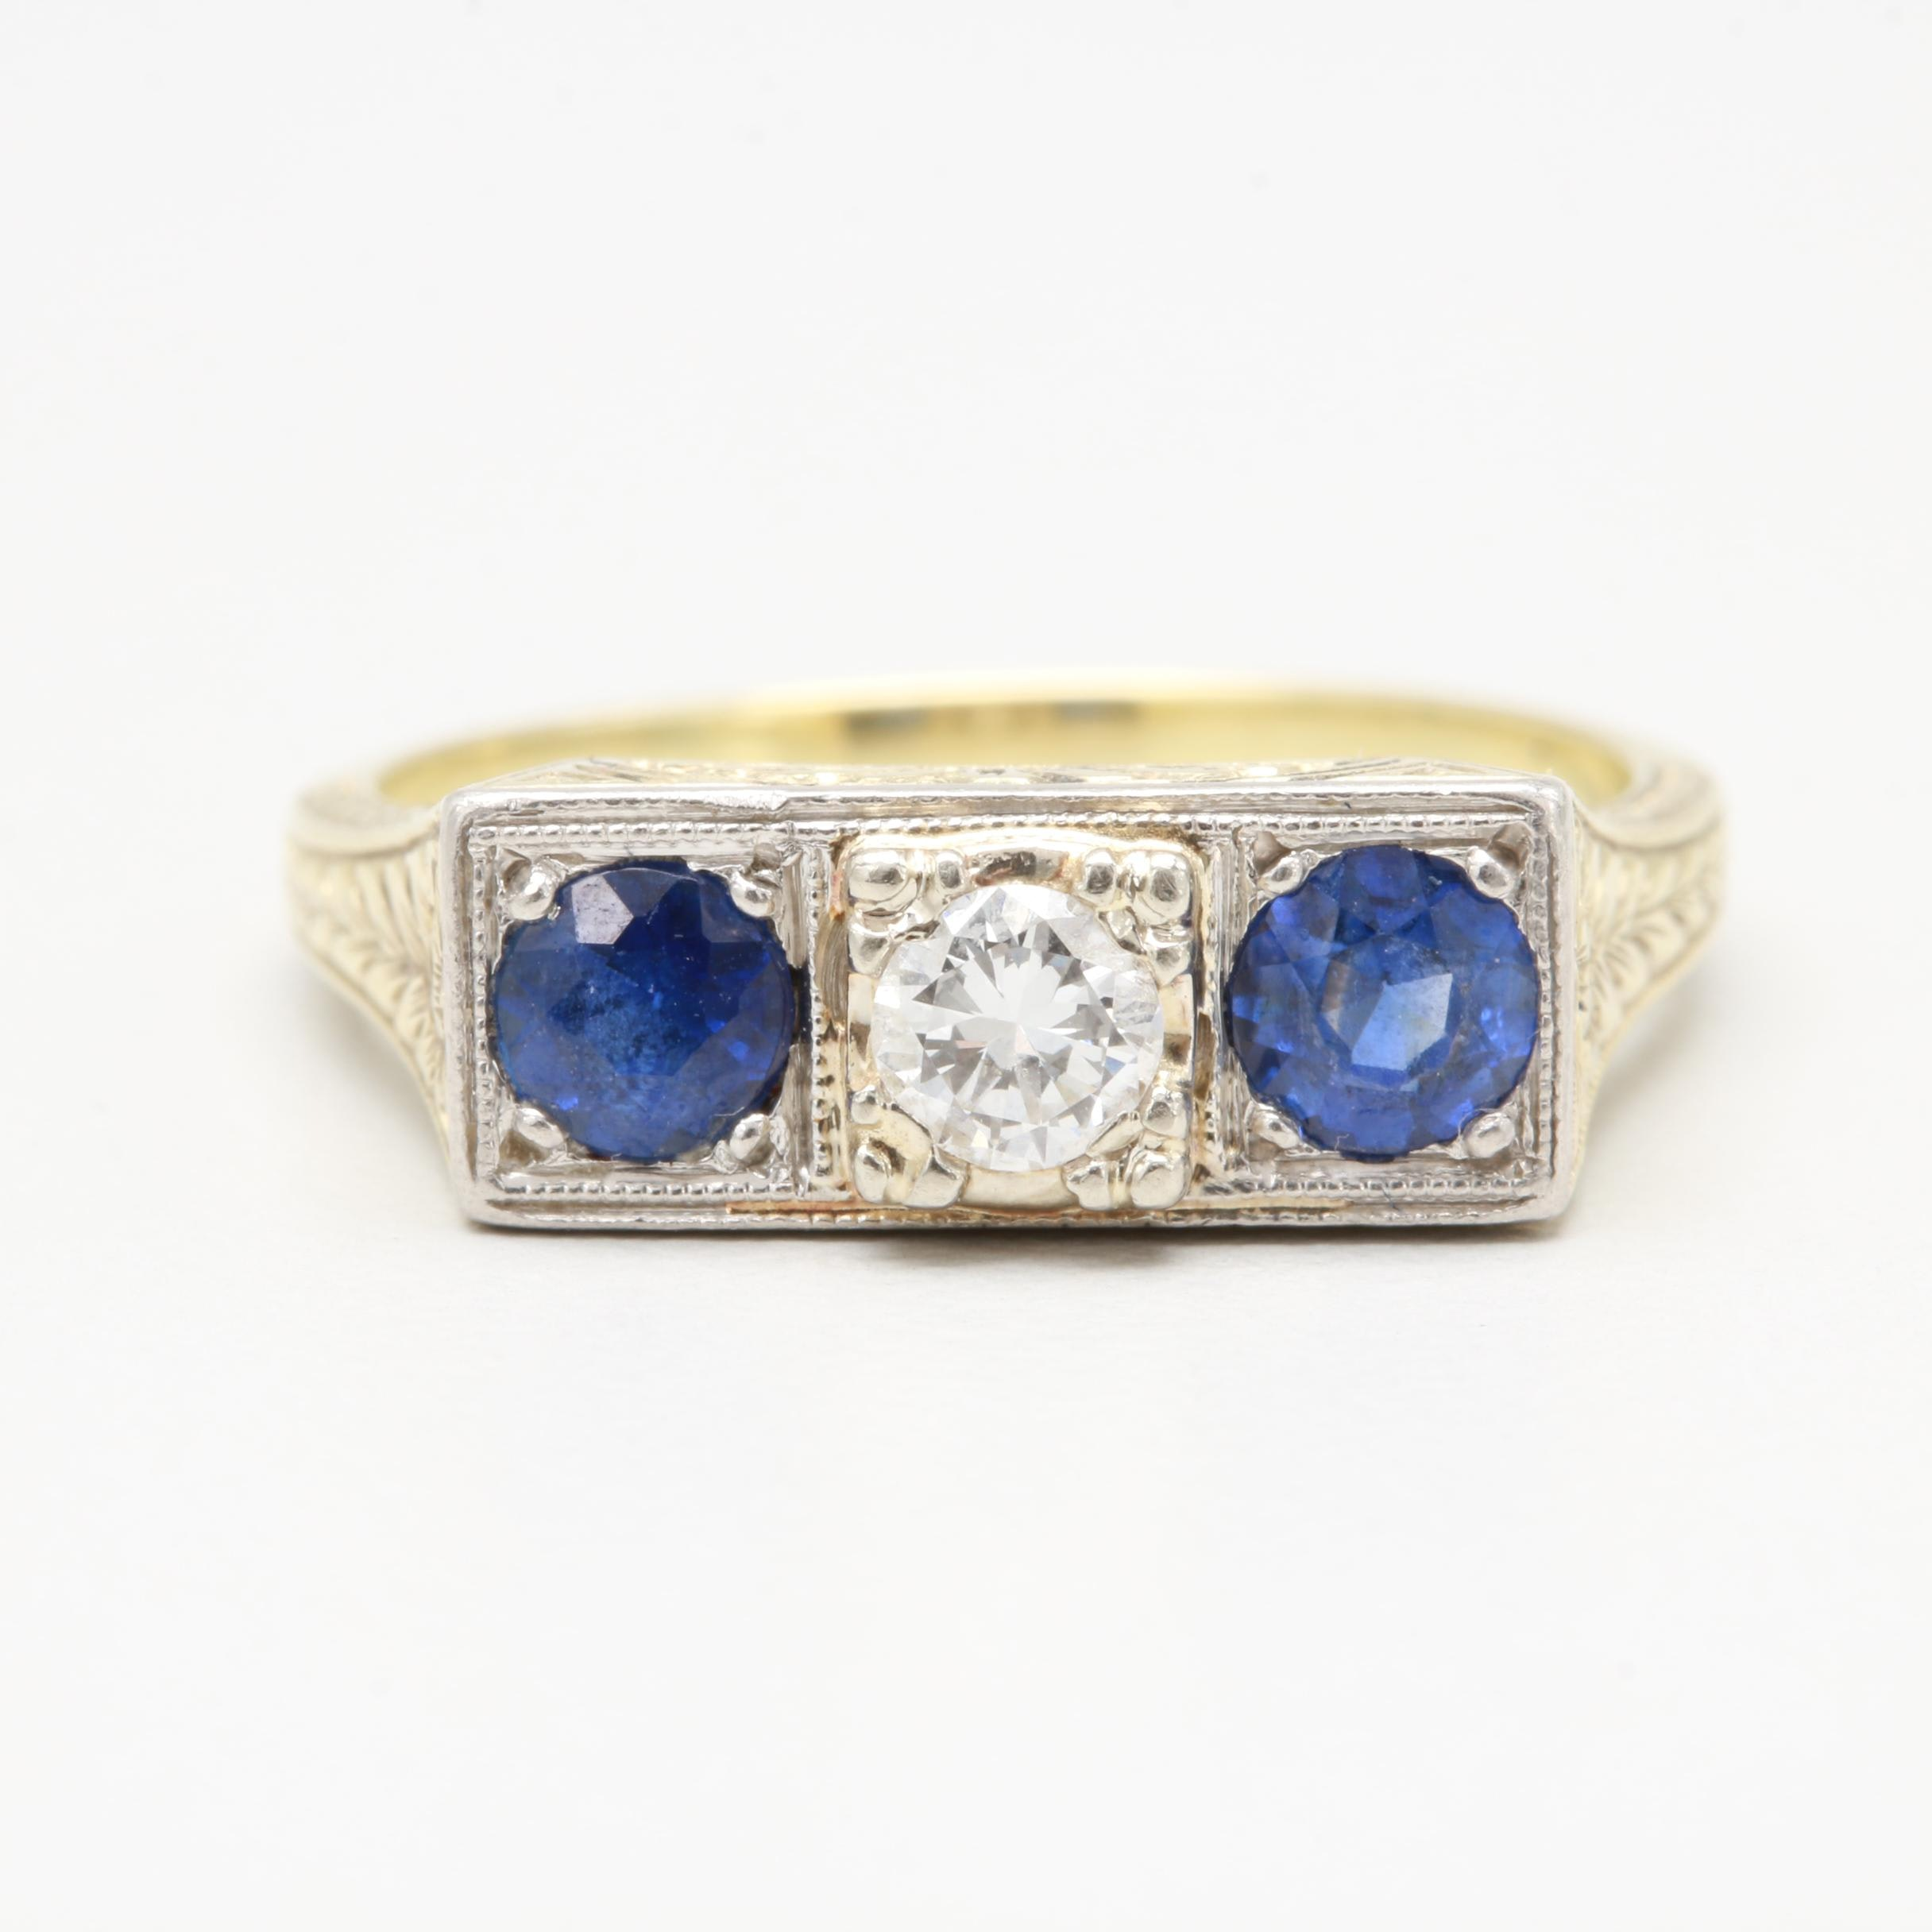 Art Deco 14K Yellow Gold and Platinum Diamond and Synthetic Sapphire Ring